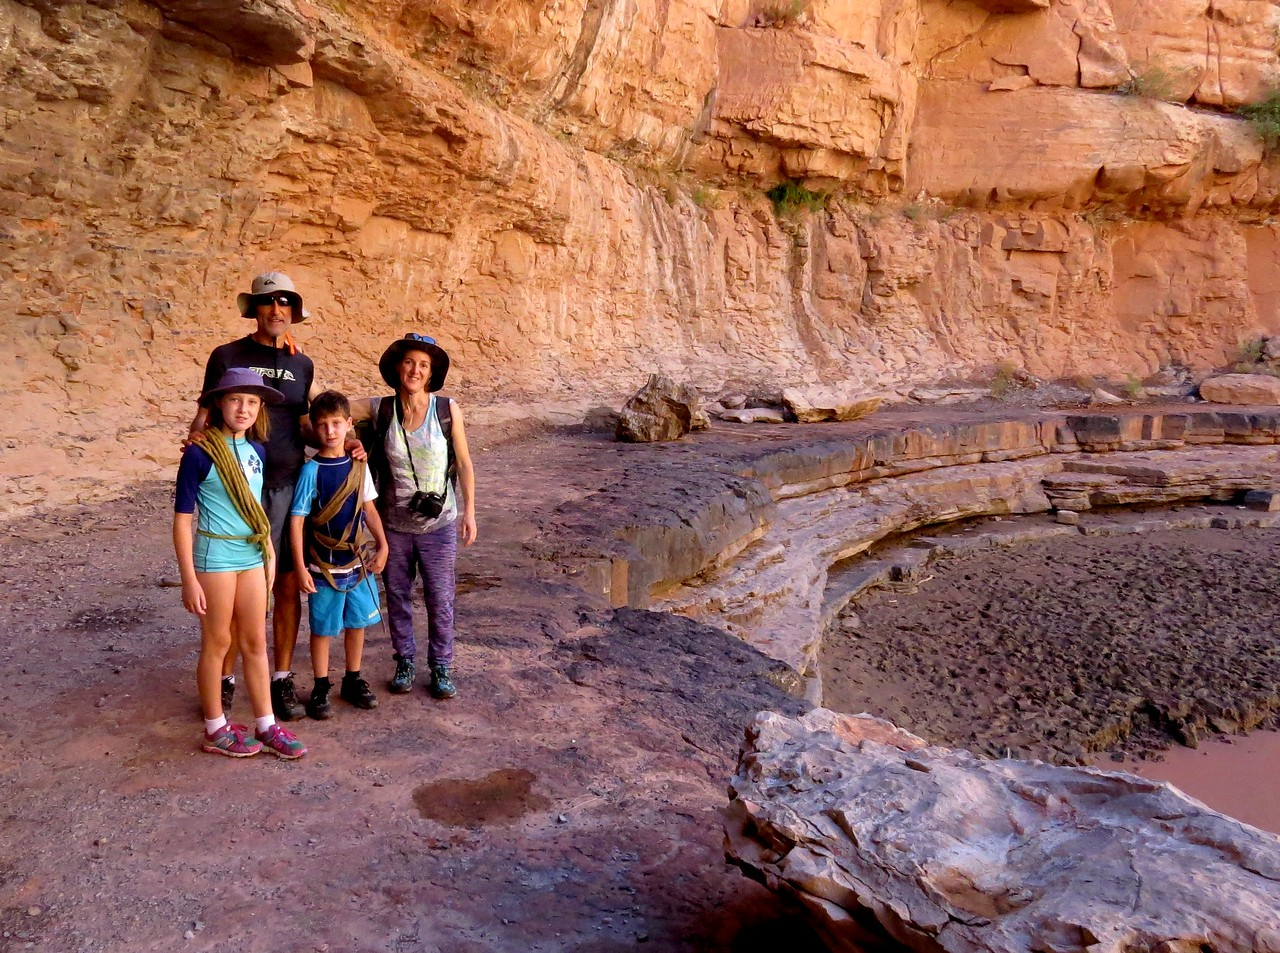 John's Camp had a good place for the kids to swim and there was also a pool up above the pour-over. Here the Azriel family is ready for the hike and climb to the pool.